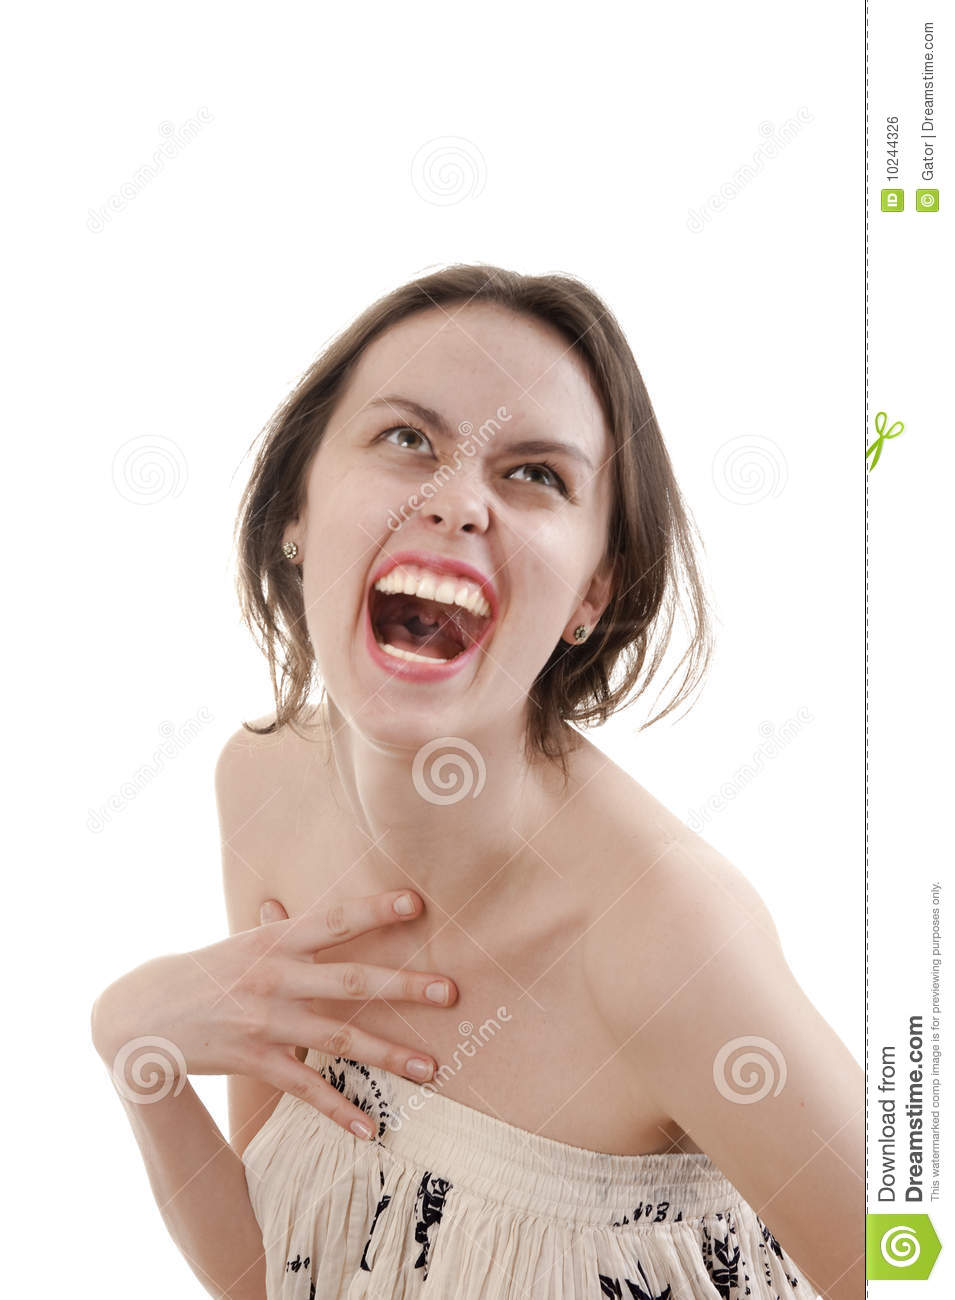 Hysteria stock photo. Image of cachinnation, lady, gesture